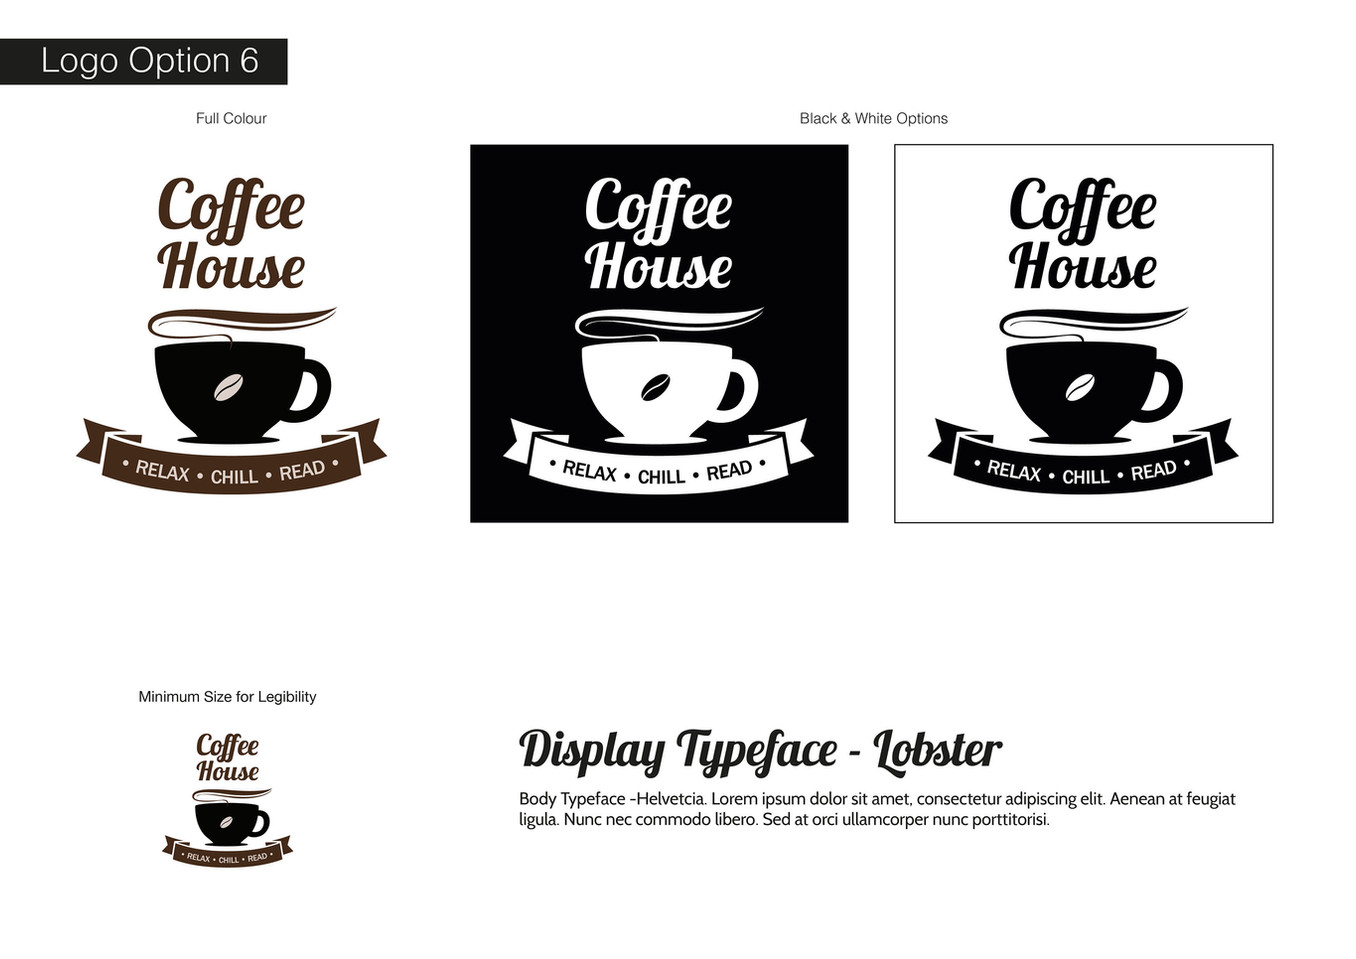 Coffee House Visual Identity - Development 6